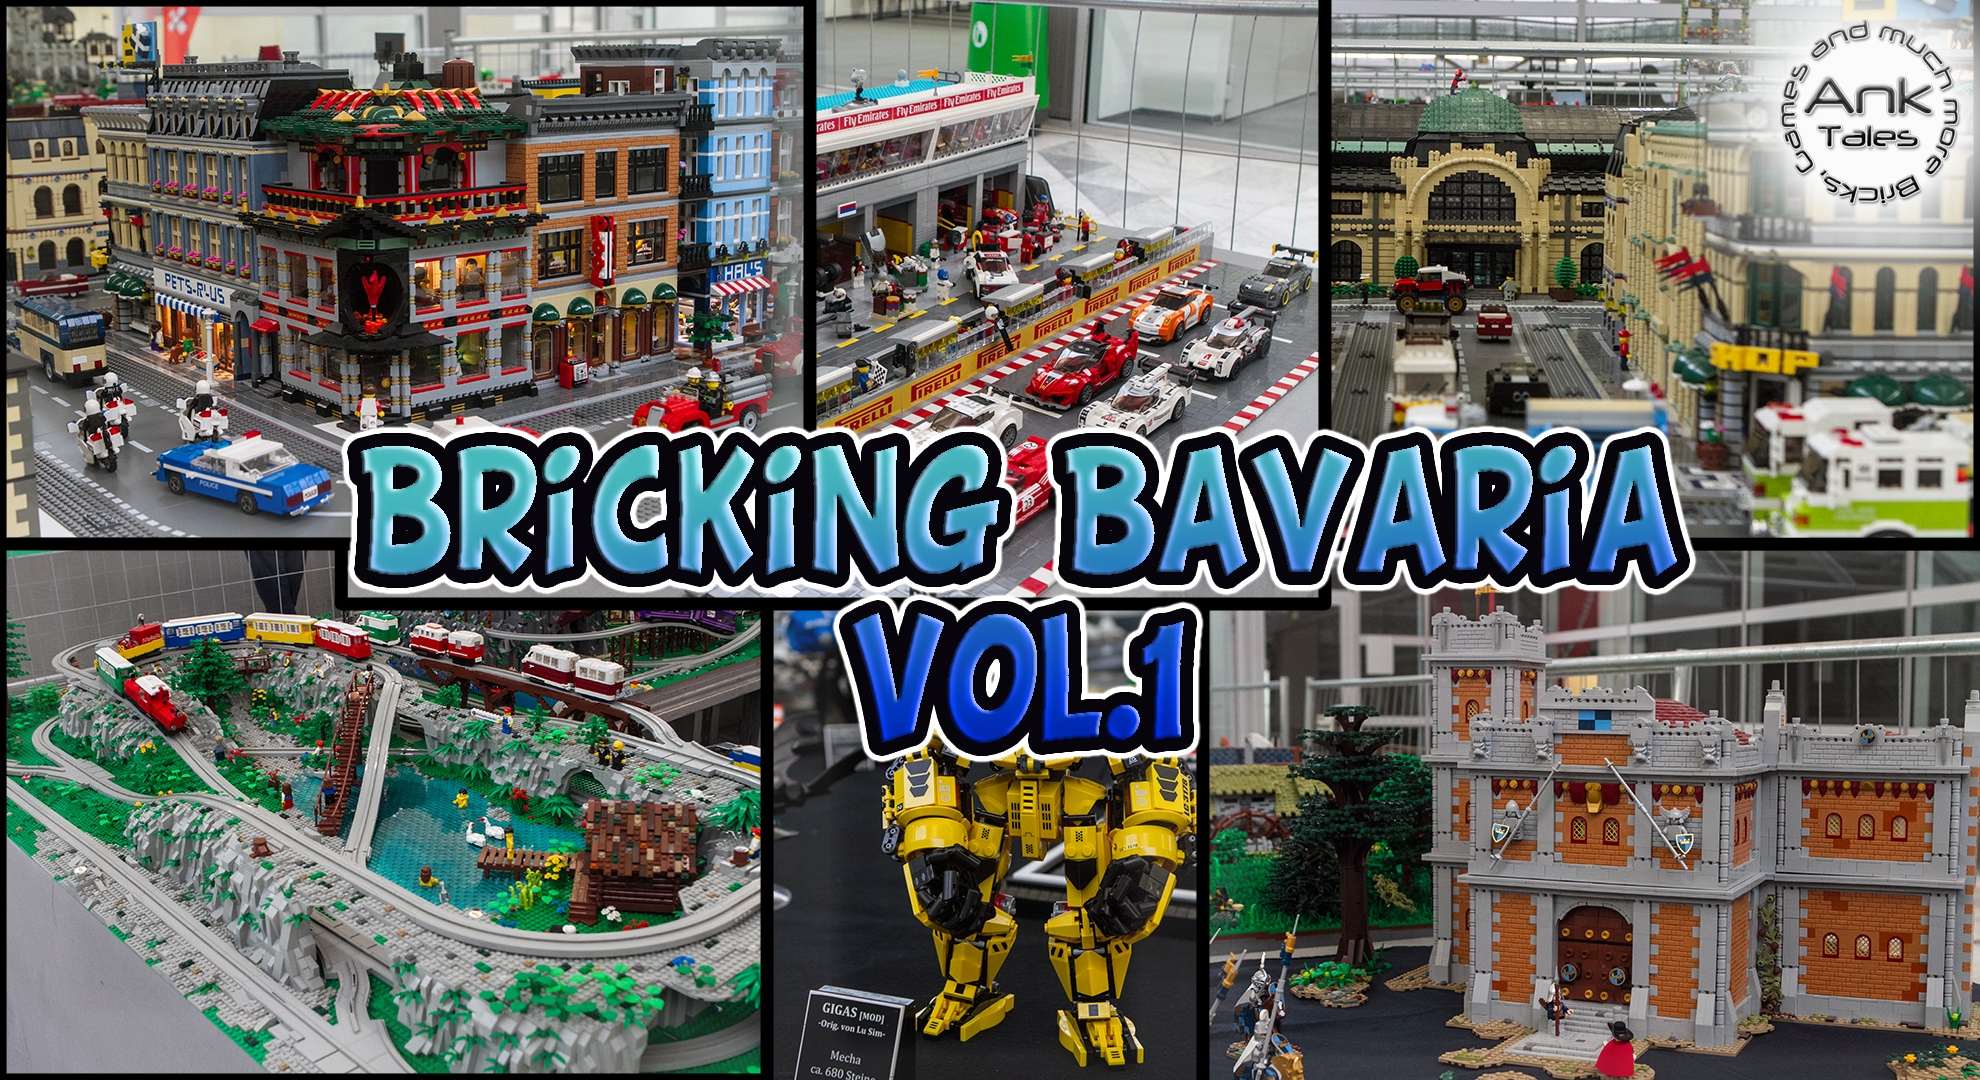 Link a LEGO Fan Exhibition – Complete Tour of Bricking Bavaria 2017 Vol.1 AnkTales